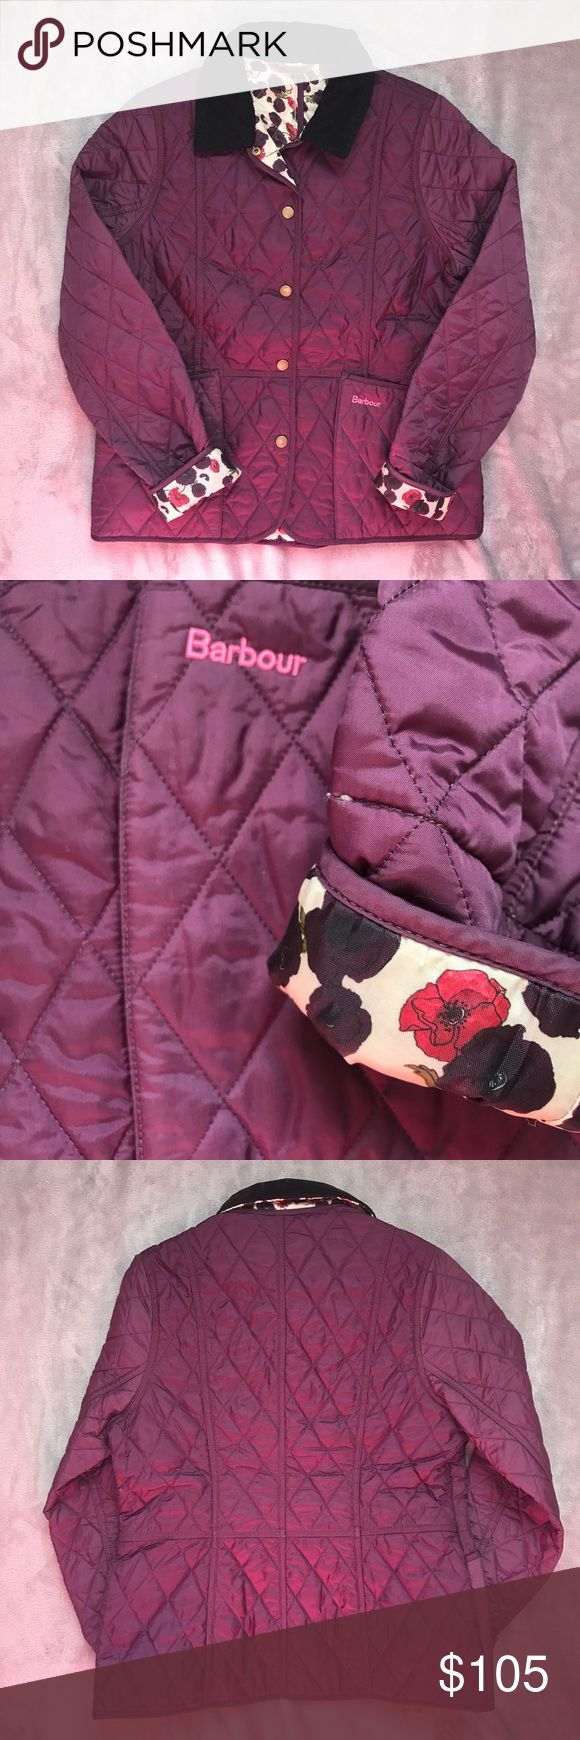 BARBOUR QUILTED JACKET Barbour quilted jacket  - Country cottage prints - Size XS/XXS women's, XXL/14-15 kids - Worn a handful of times, EUC looks brand new  - Two front pockets - Buttons up front - Zip pocket on inside - Black cord collar Barbour Jackets & Coats